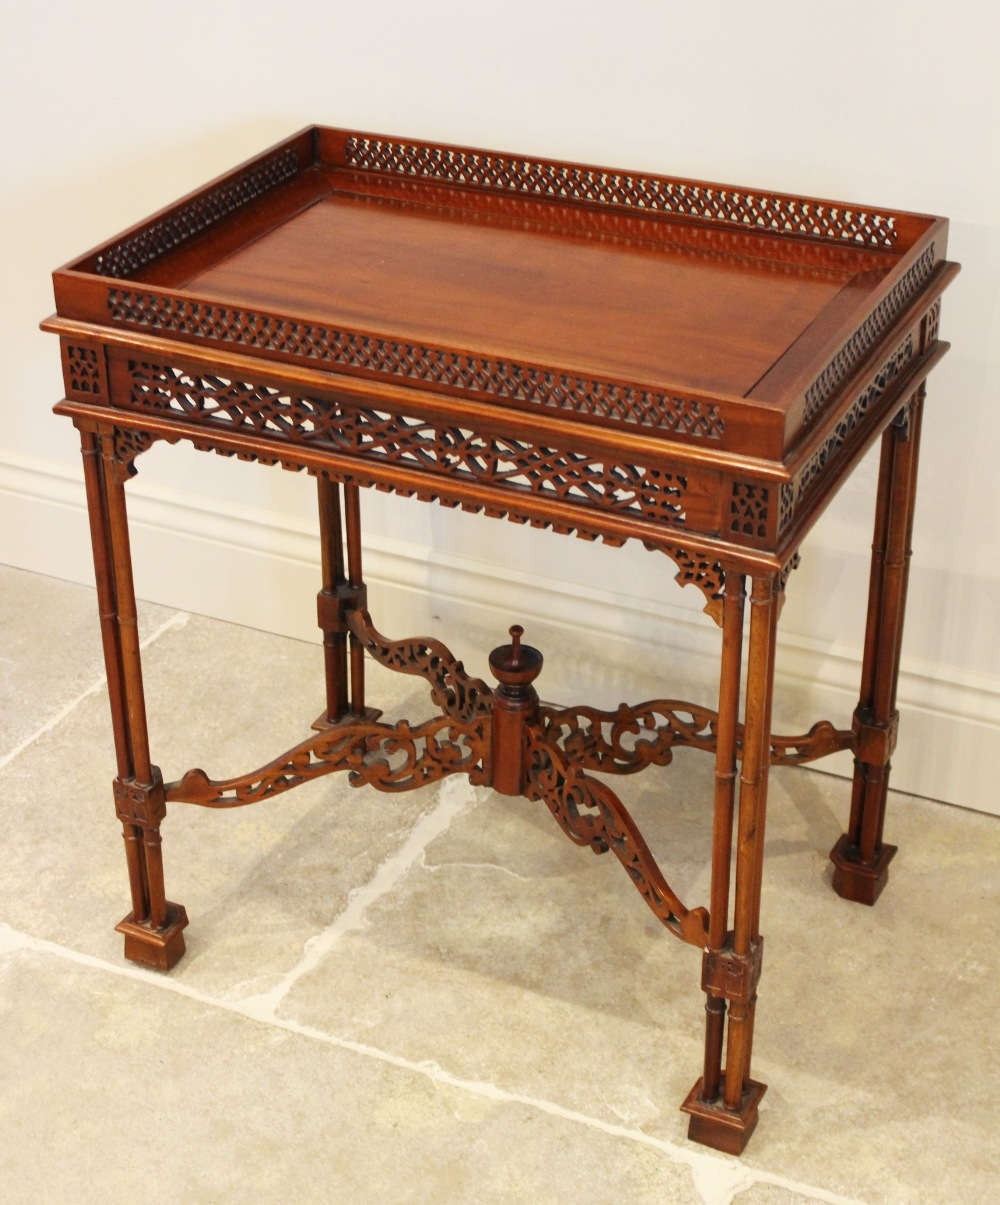 A Chinese Chippendale style mahogany silver table, late 20th century, the rectangular top with a - Image 2 of 2